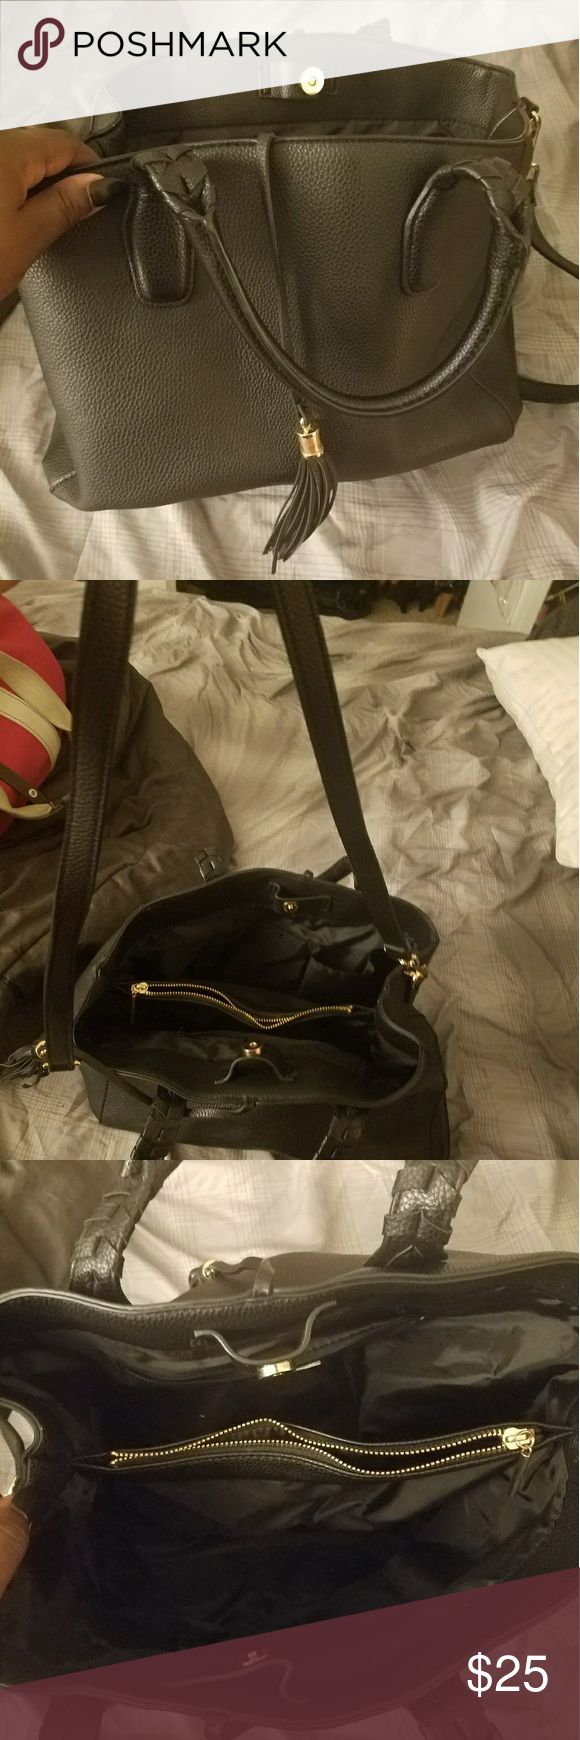 H&M black tassel purse H&M purse. With two sides and compartments for storing things. Comes with body strap. Only used for about a month. In great condition. Selling only. Price is negotiable:) H&M Bags